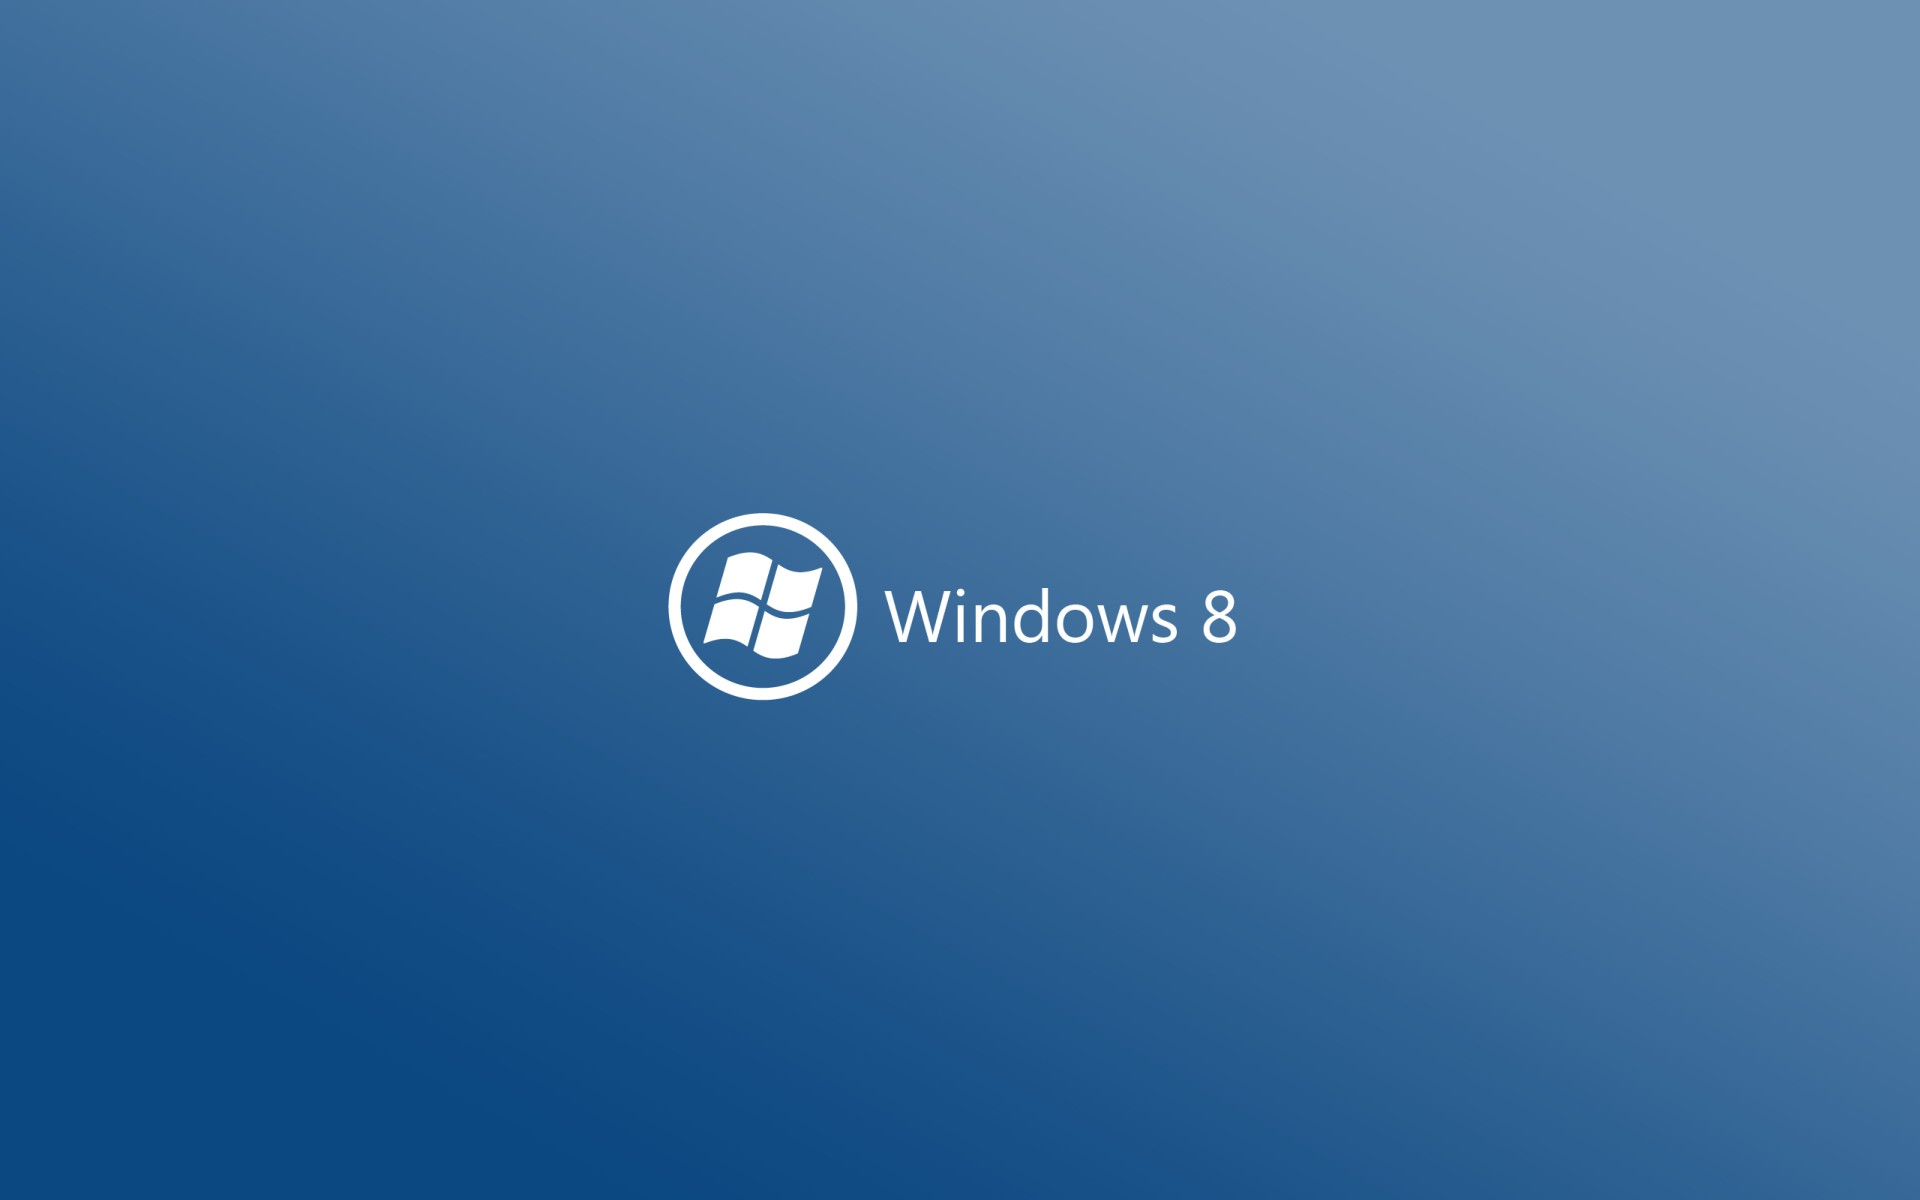 Windows 8 background images - Download These 44 Hd Windows 8 Wallpaper Images